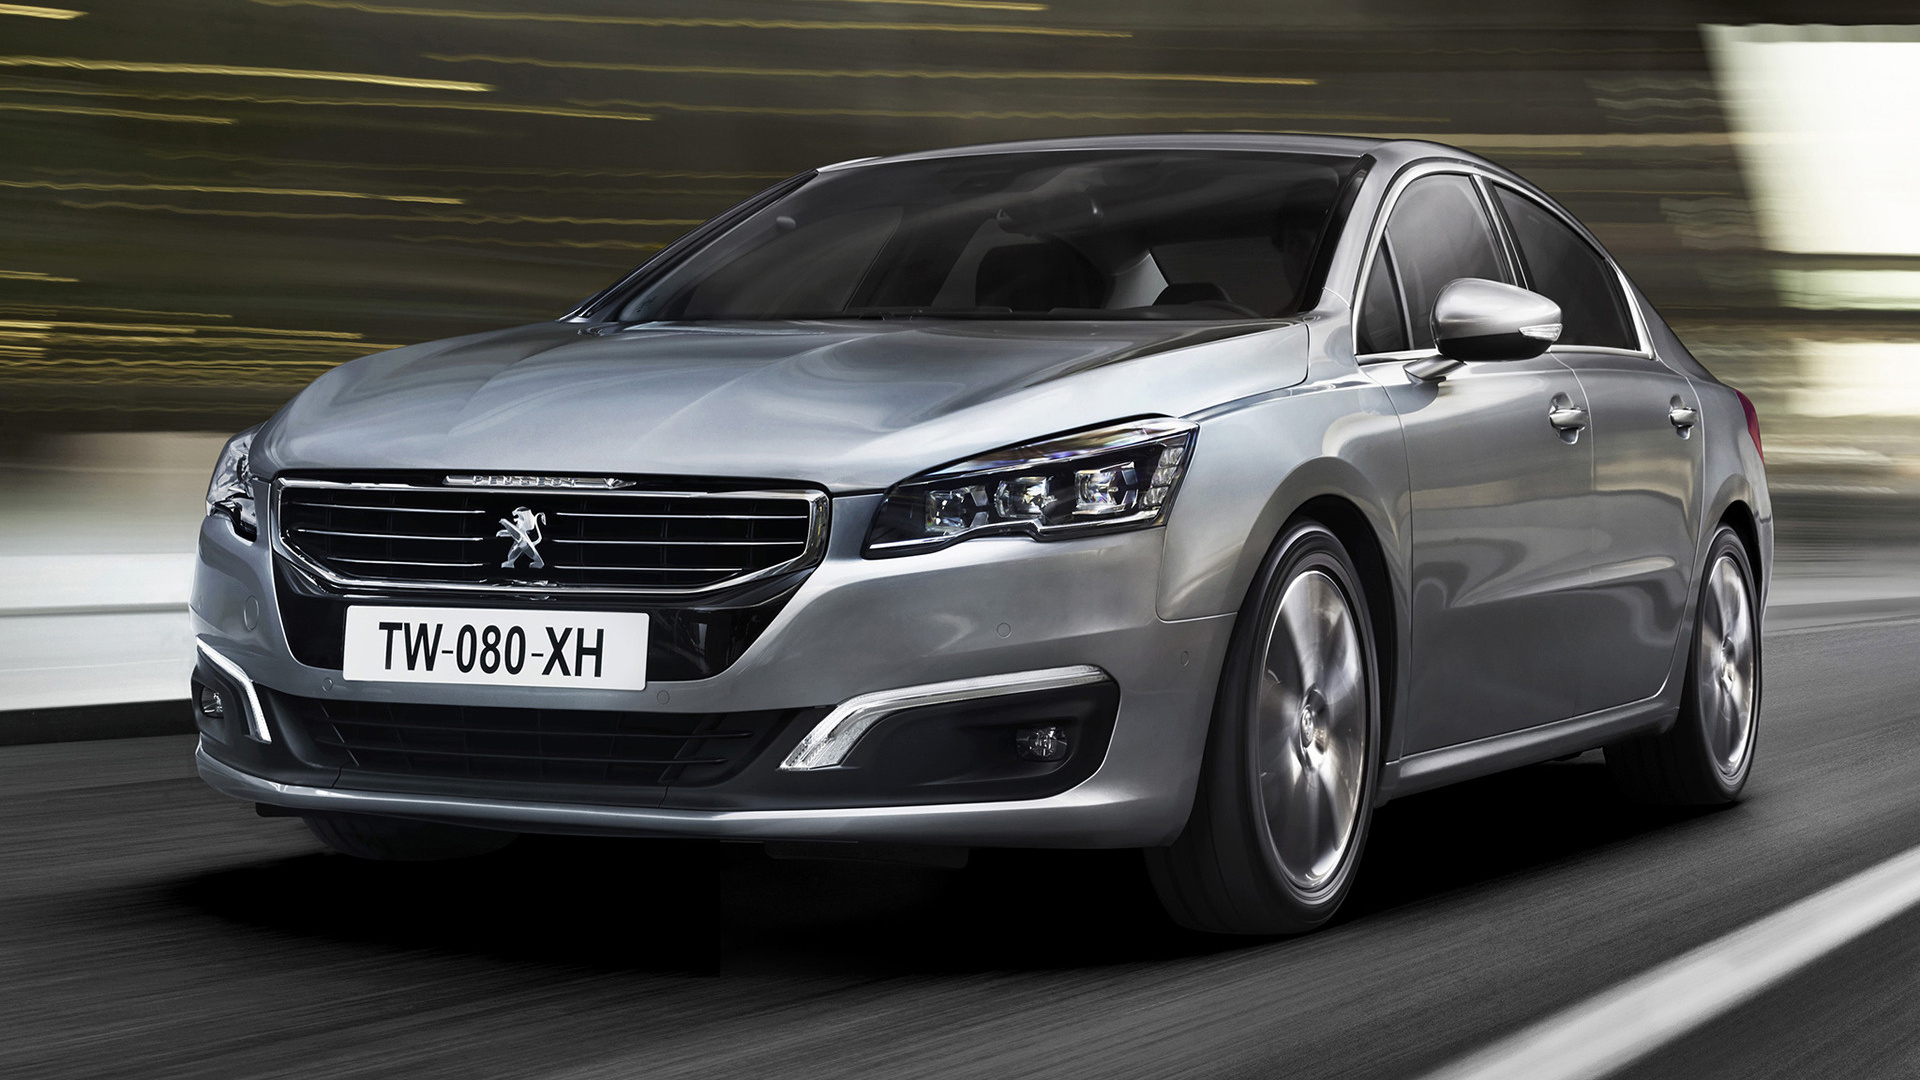 2014 Peugeot 508   Wallpapers and HD Images Car Pixel 1920x1080